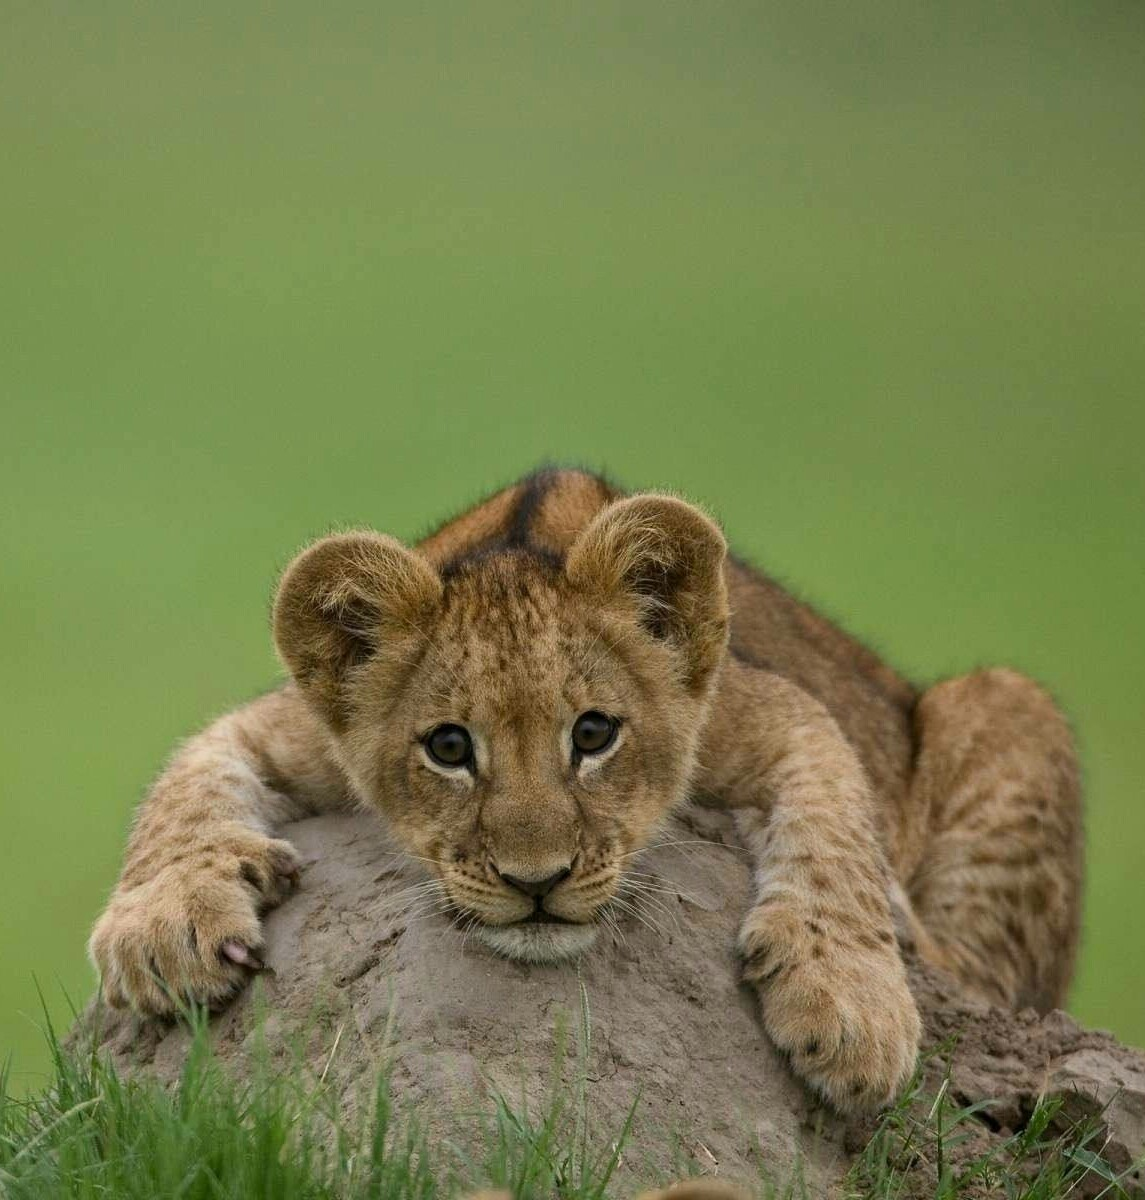 20272 download wallpaper Animals, Lions screensavers and pictures for free